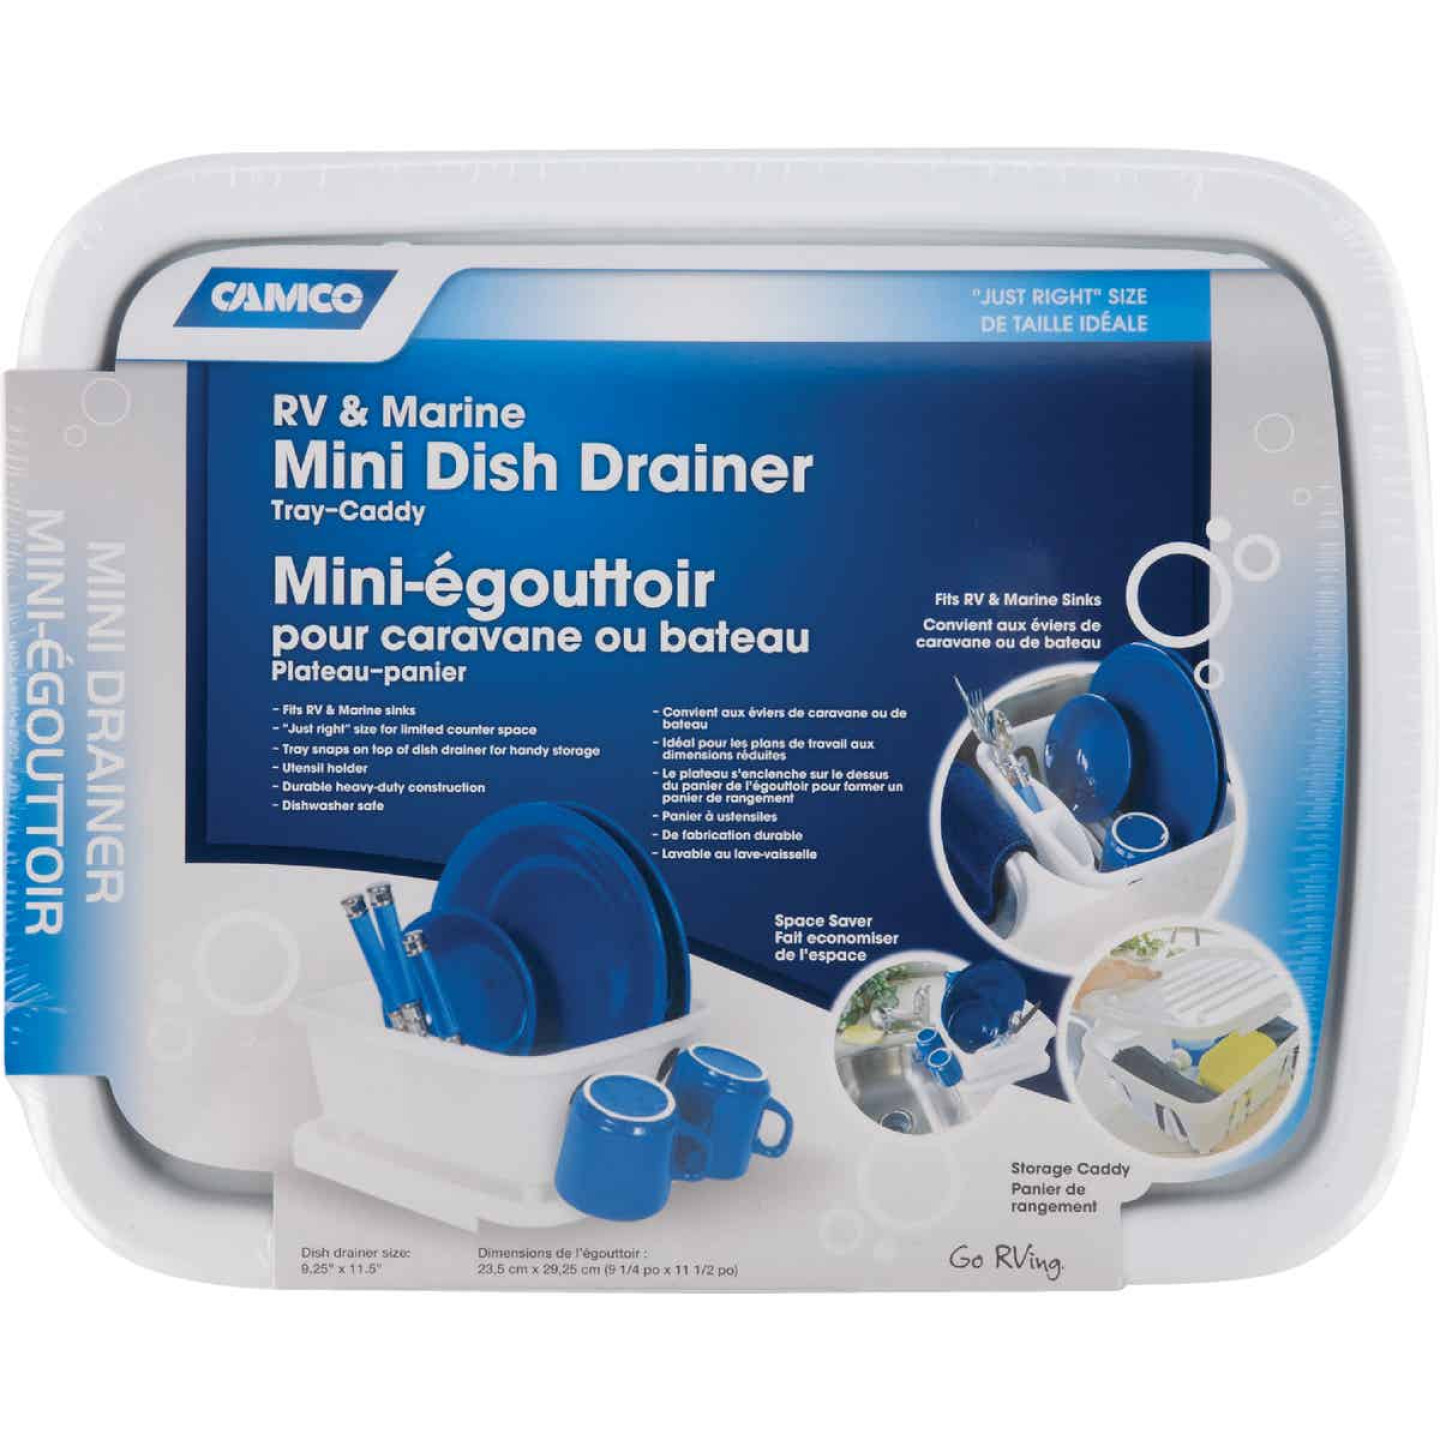 Camco Heavy-Duty Plastic 9.50 In. x 11.69 In. White RV Dish Drainer Image 3